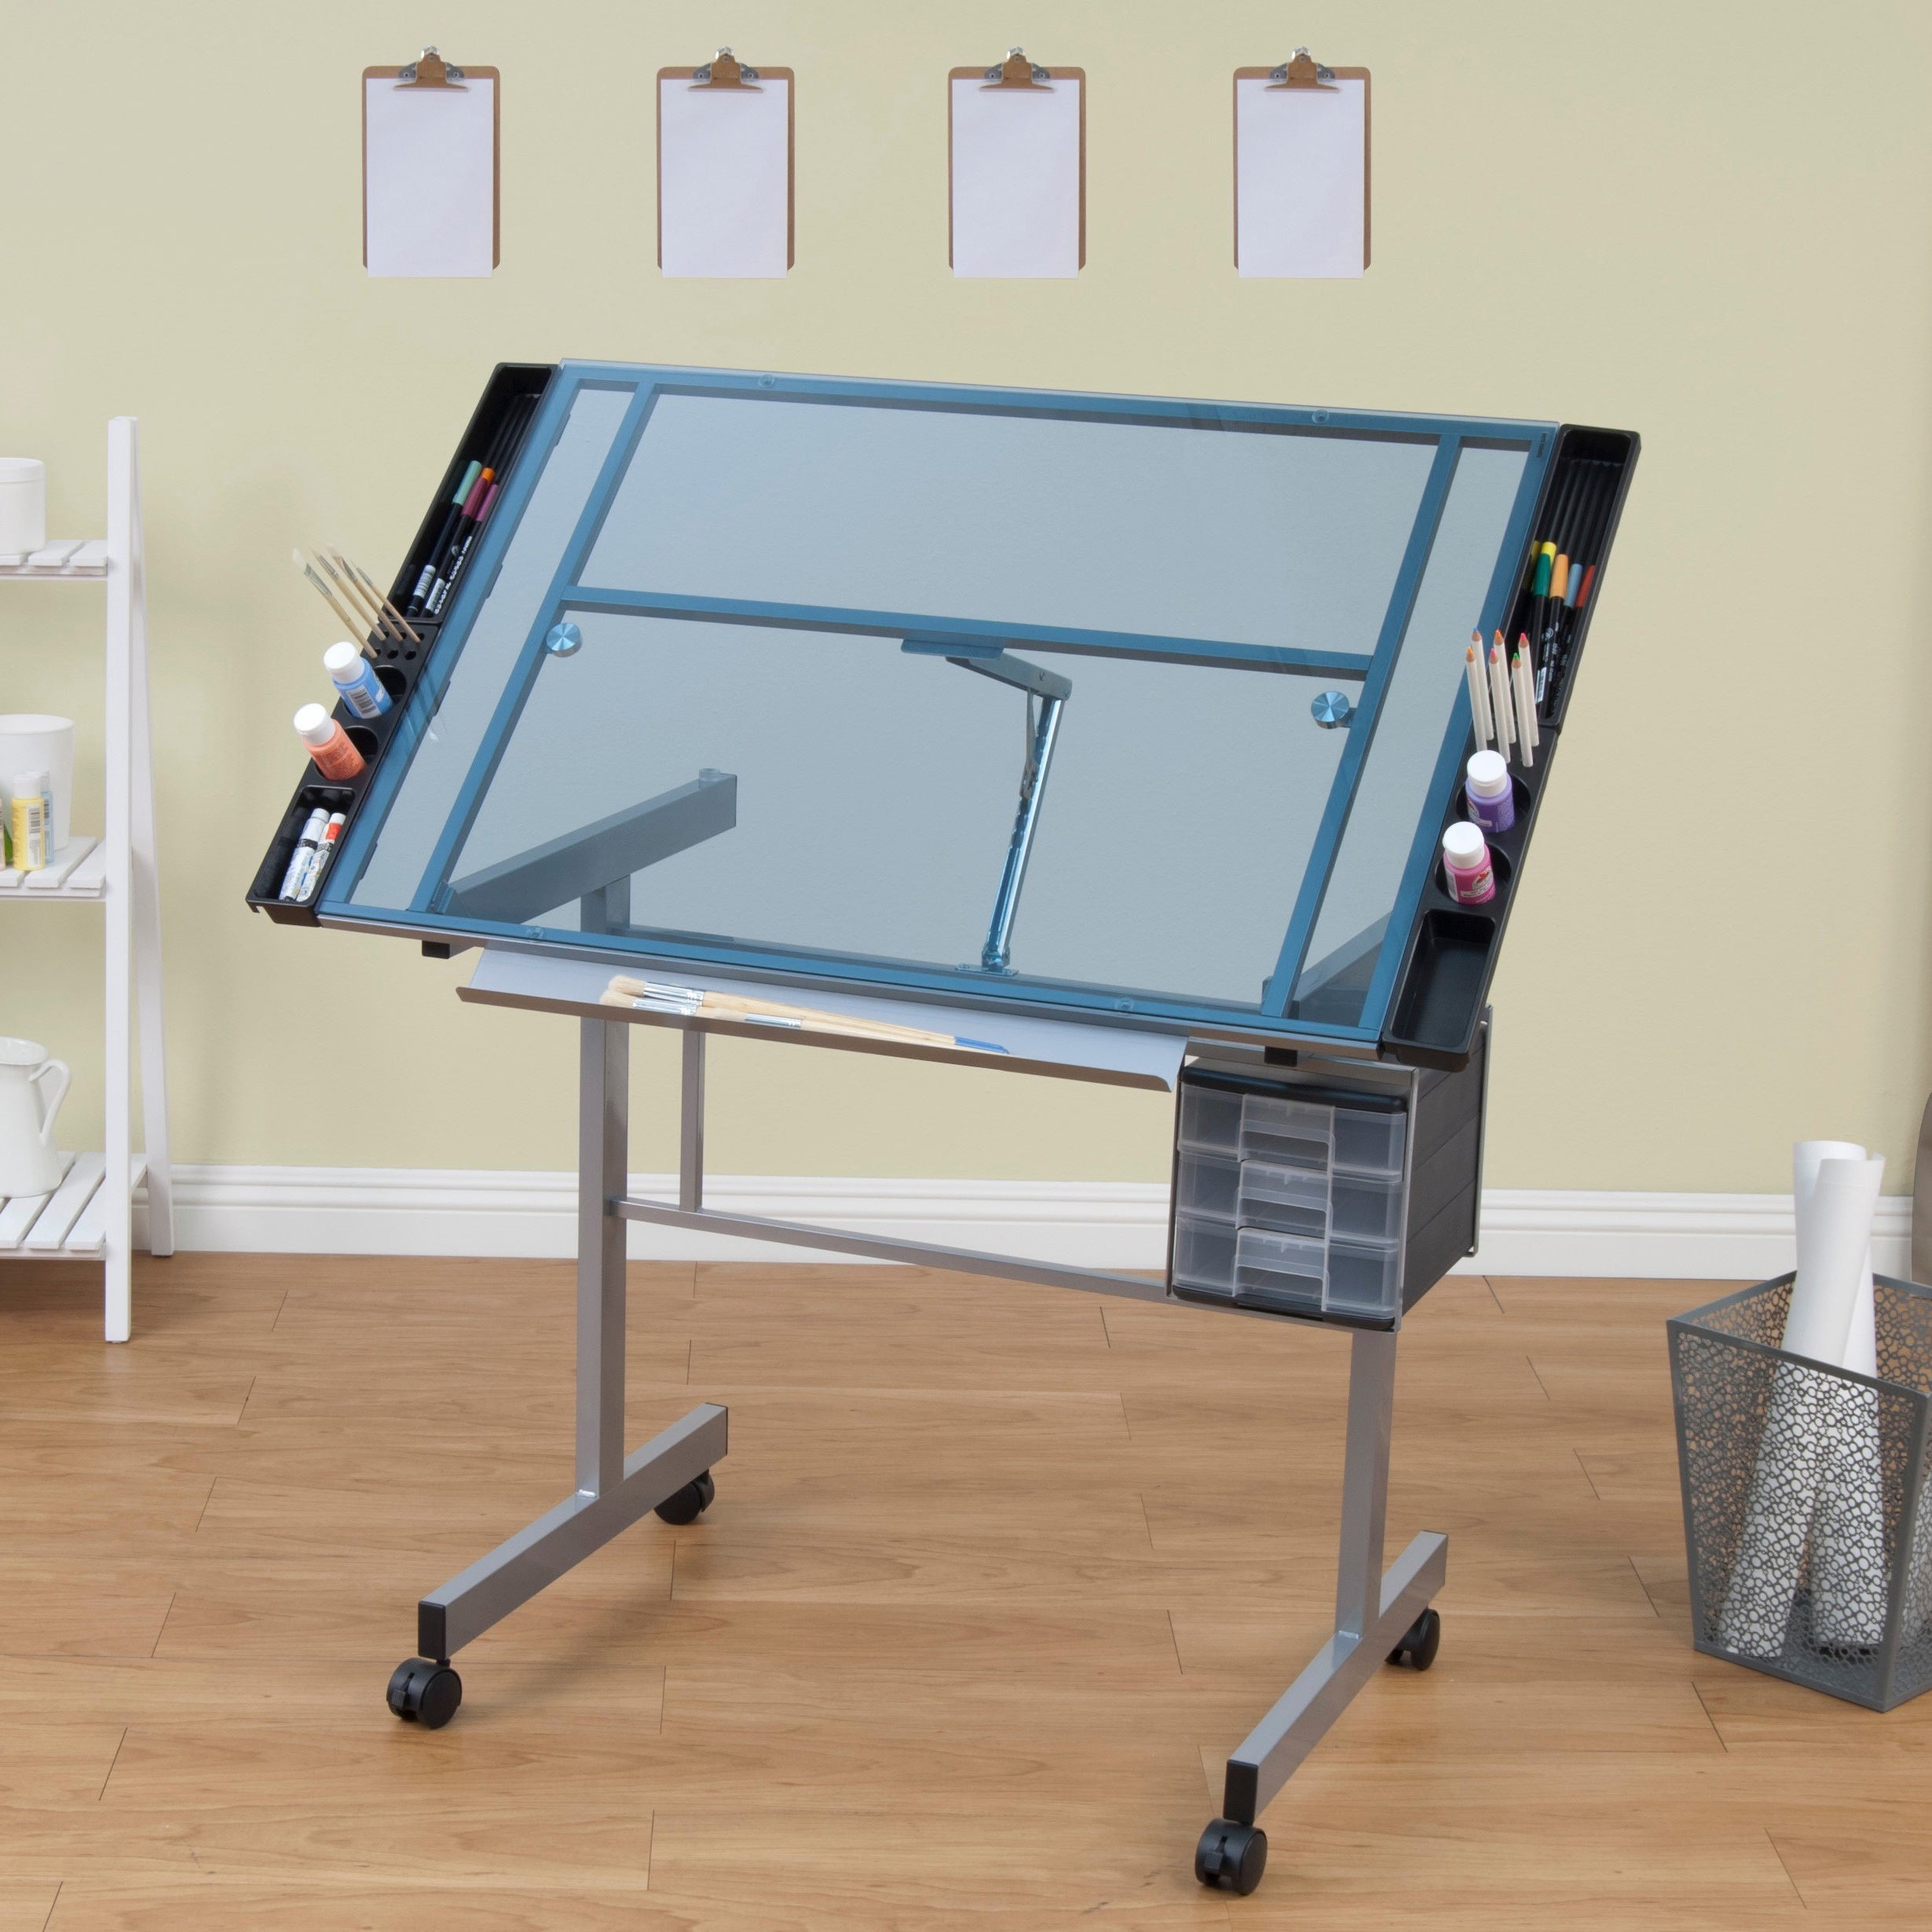 Buy Drafting Tables Online at Overstock.com | Our Best Architecture ...